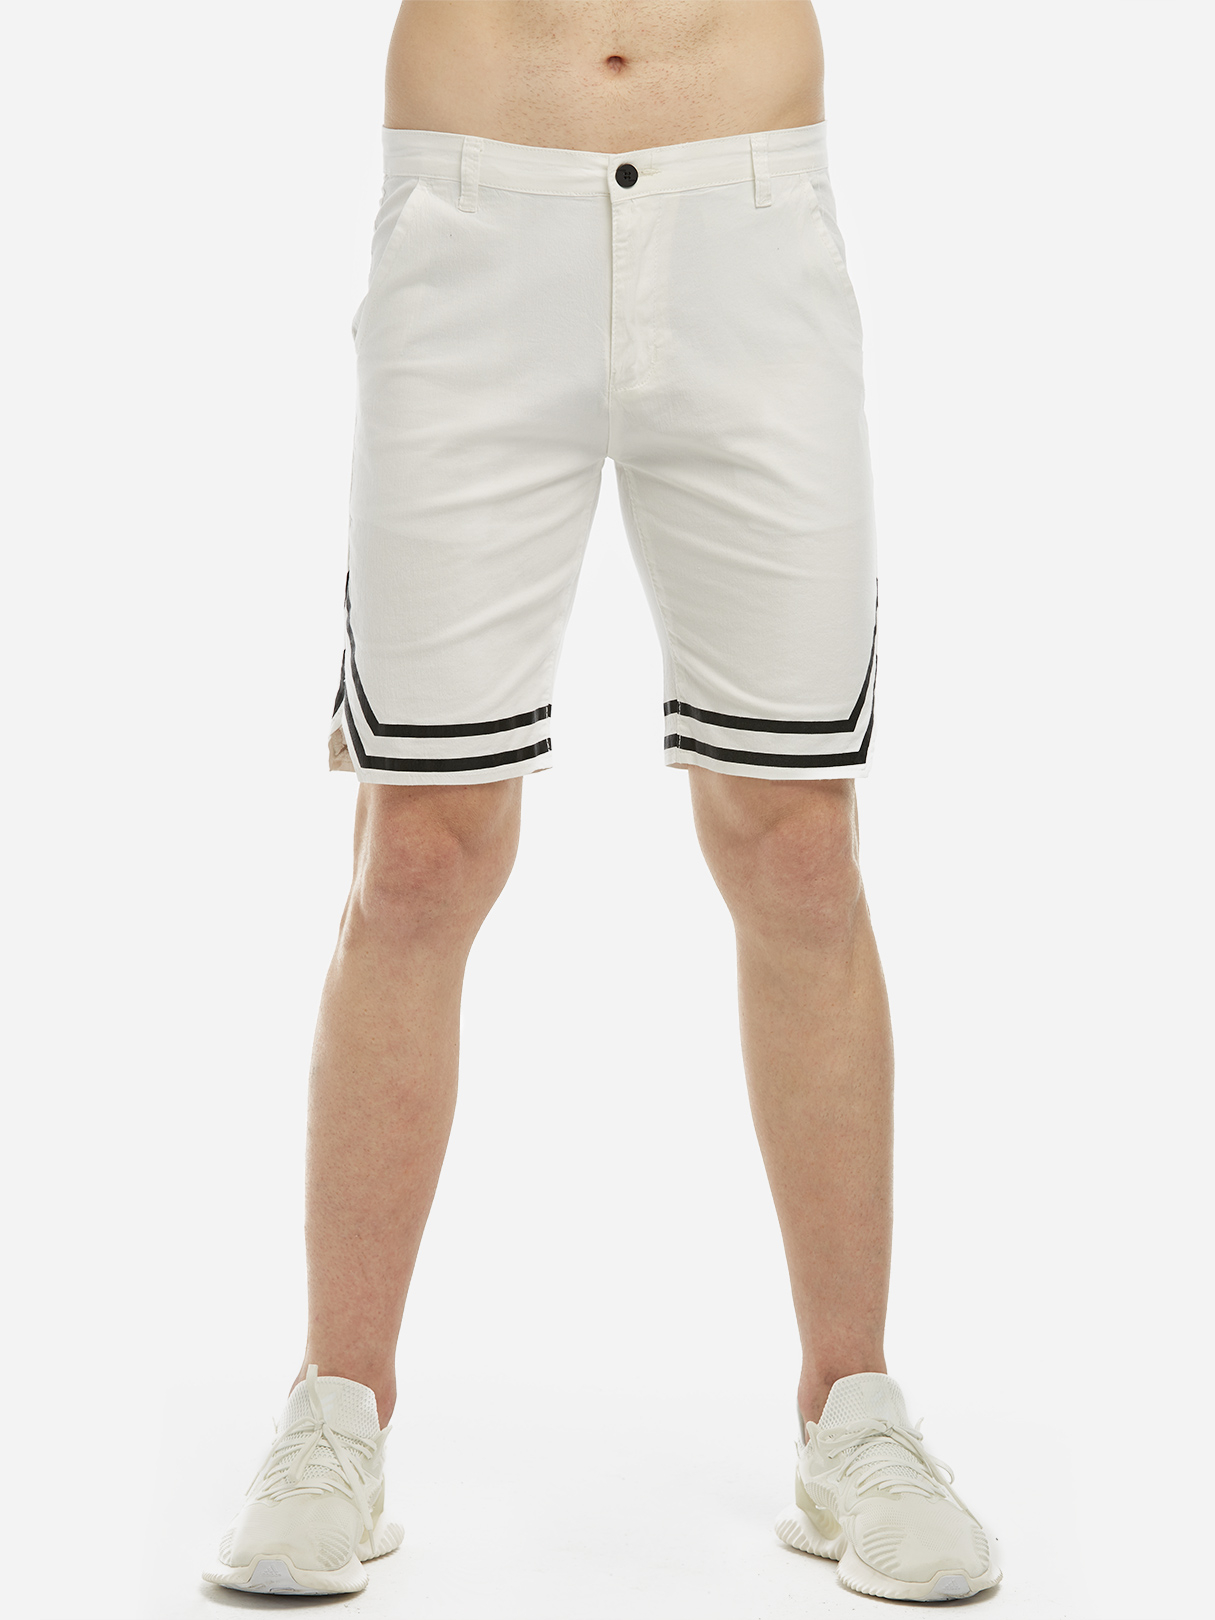 White Fashion Style Split Side Middle Waist Men's Casual Shorts